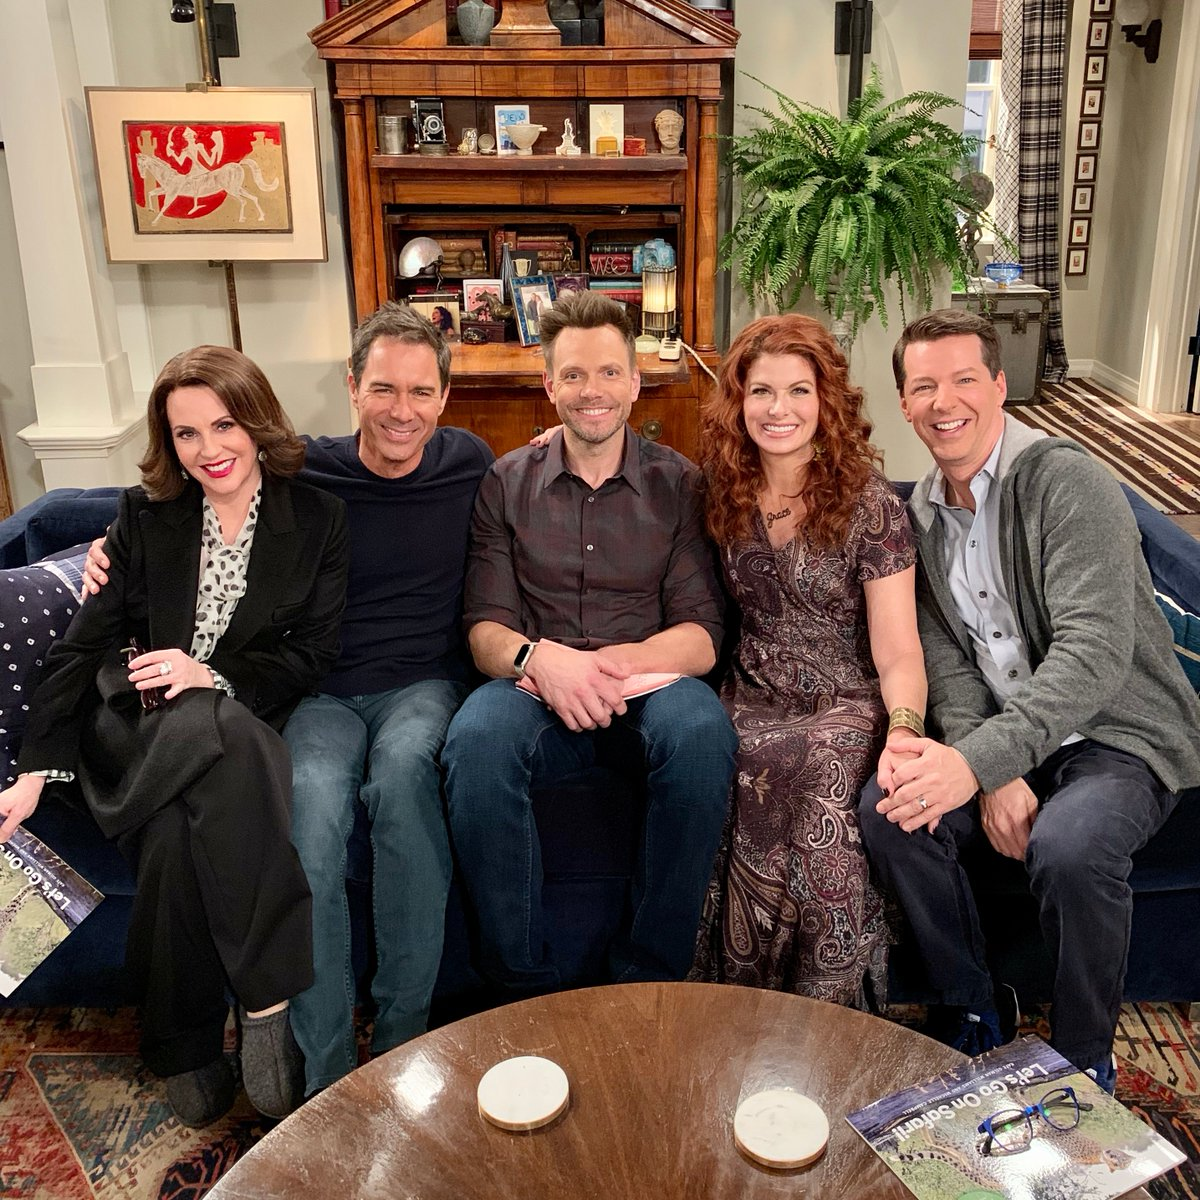 Welcome (back) to the #WillAndGrace family, @joelmchale! ❤️